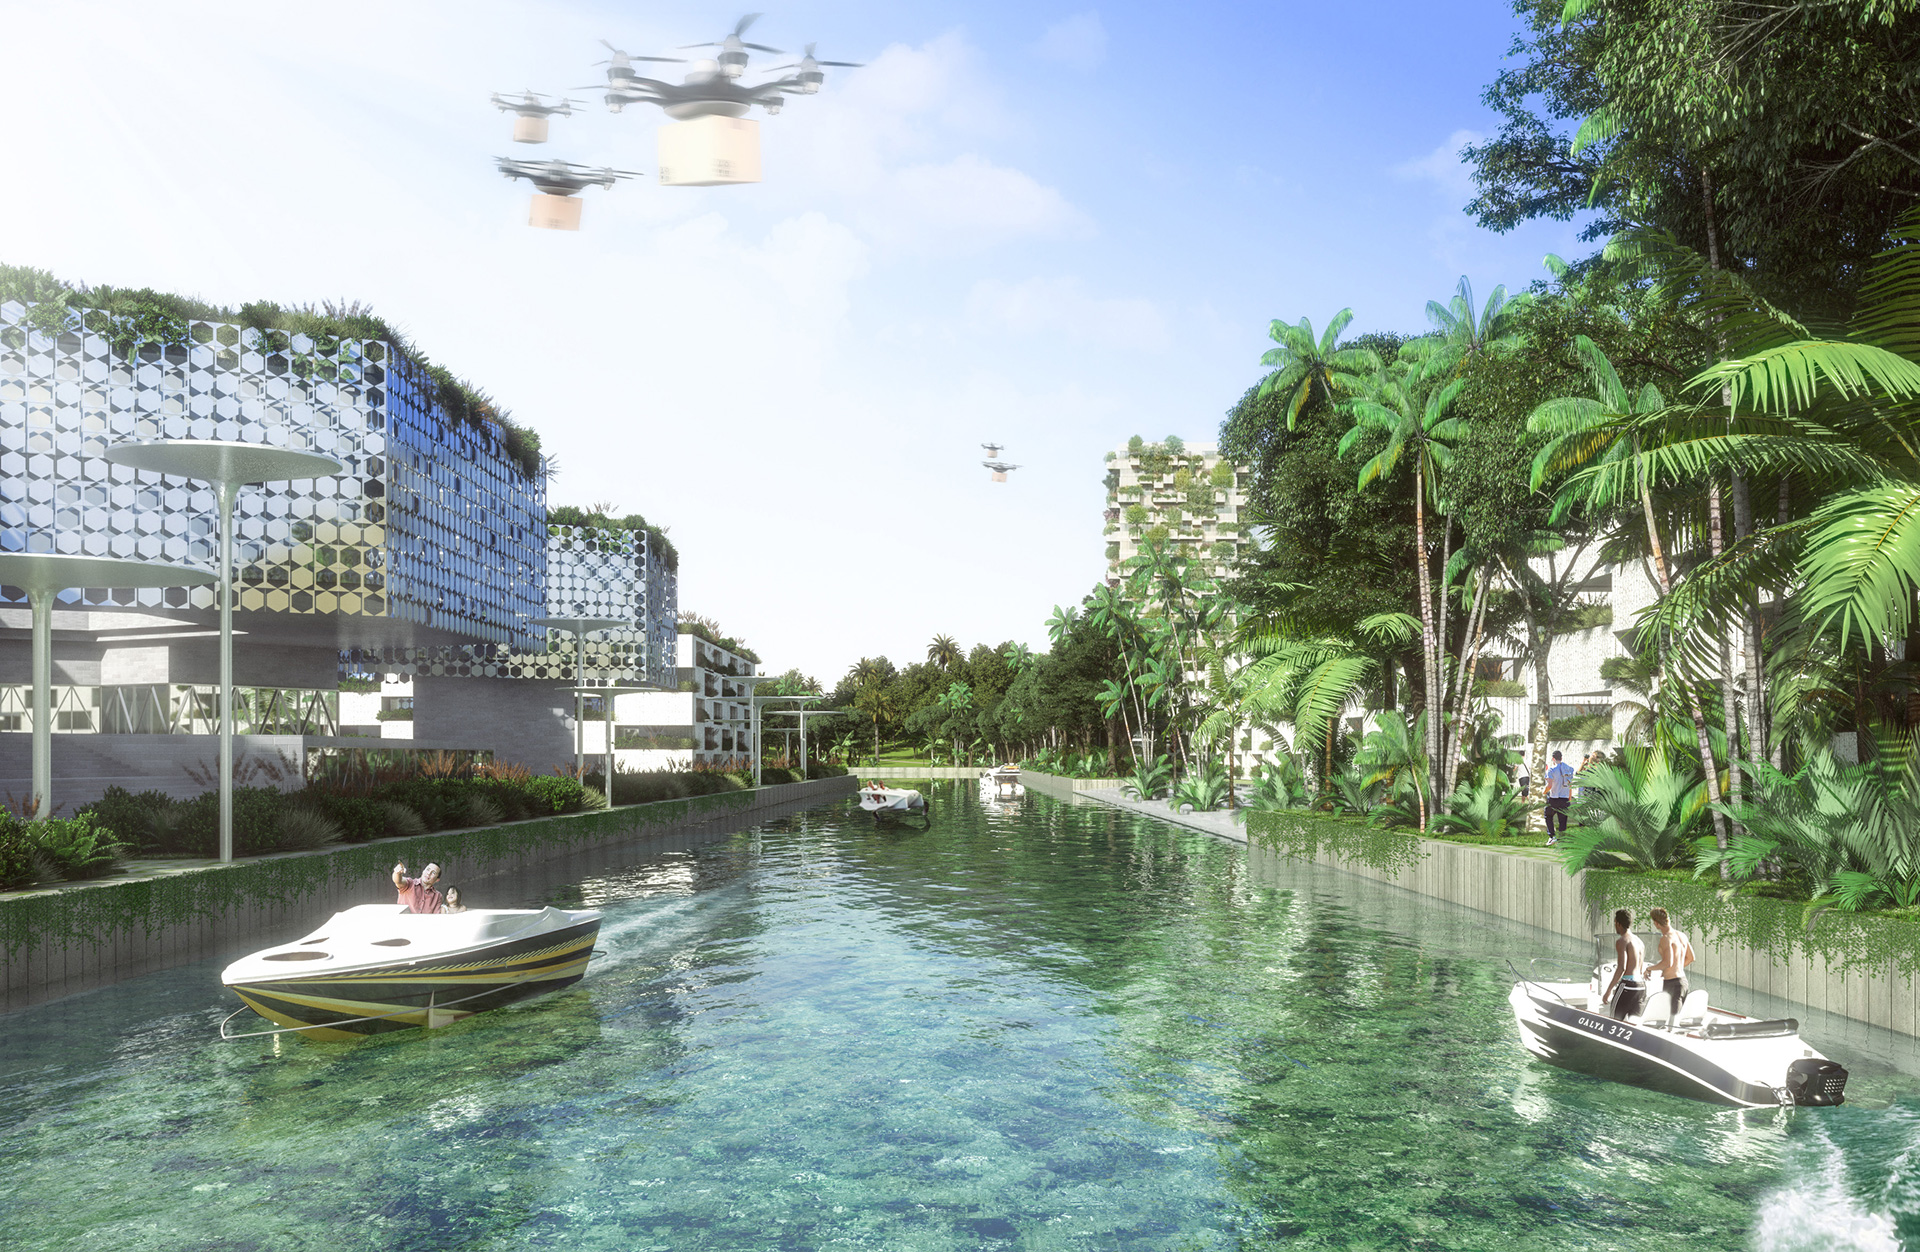 Water will be distributed within the city through a system navigable canals  | Smart Forest City | Stefano Boeri Architetti | STIRworld